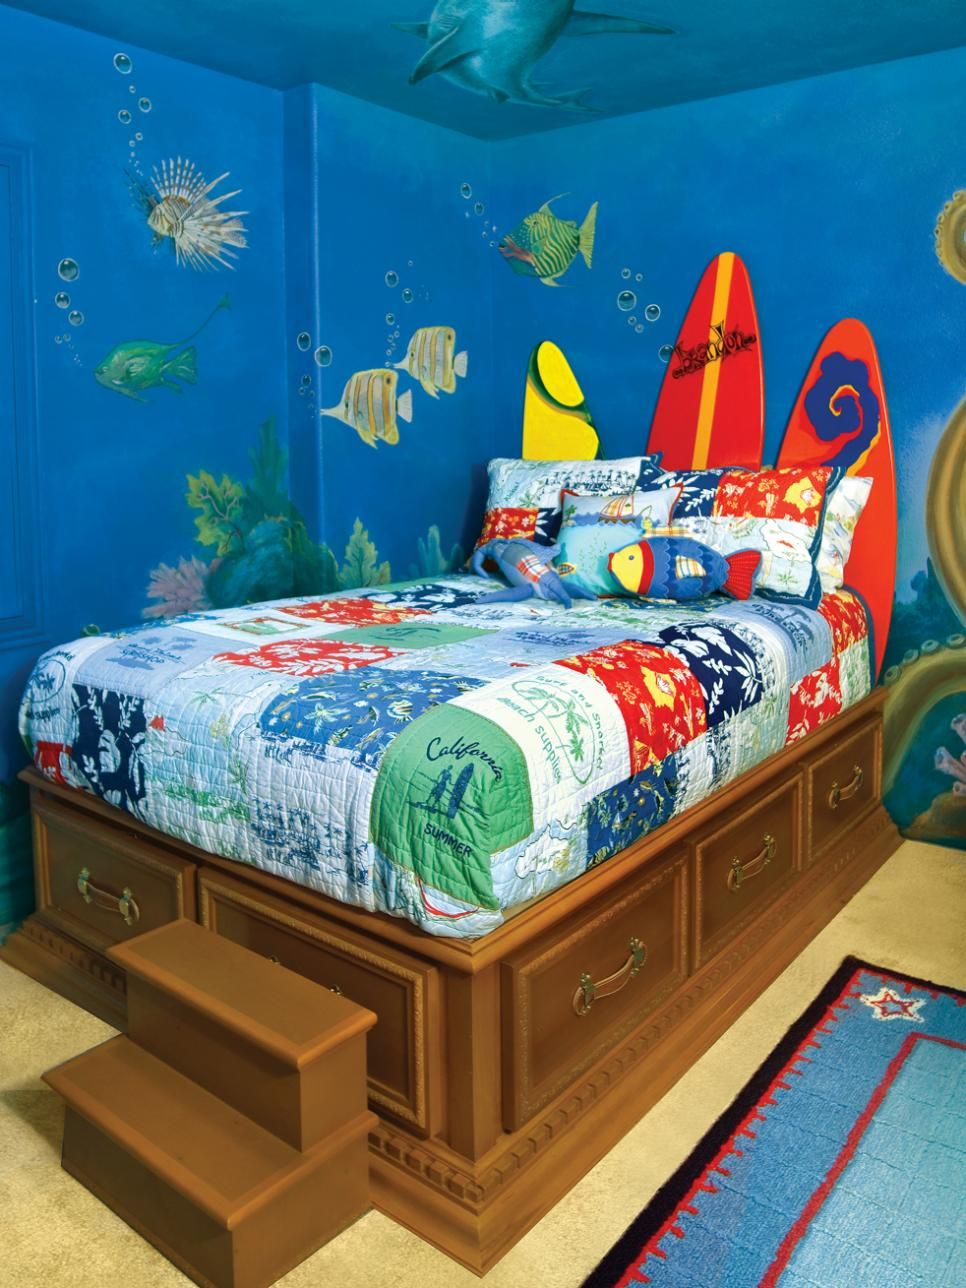 8 Ideas for Kids Bedroom Themes Bedroom themes Hgtv and Bedrooms